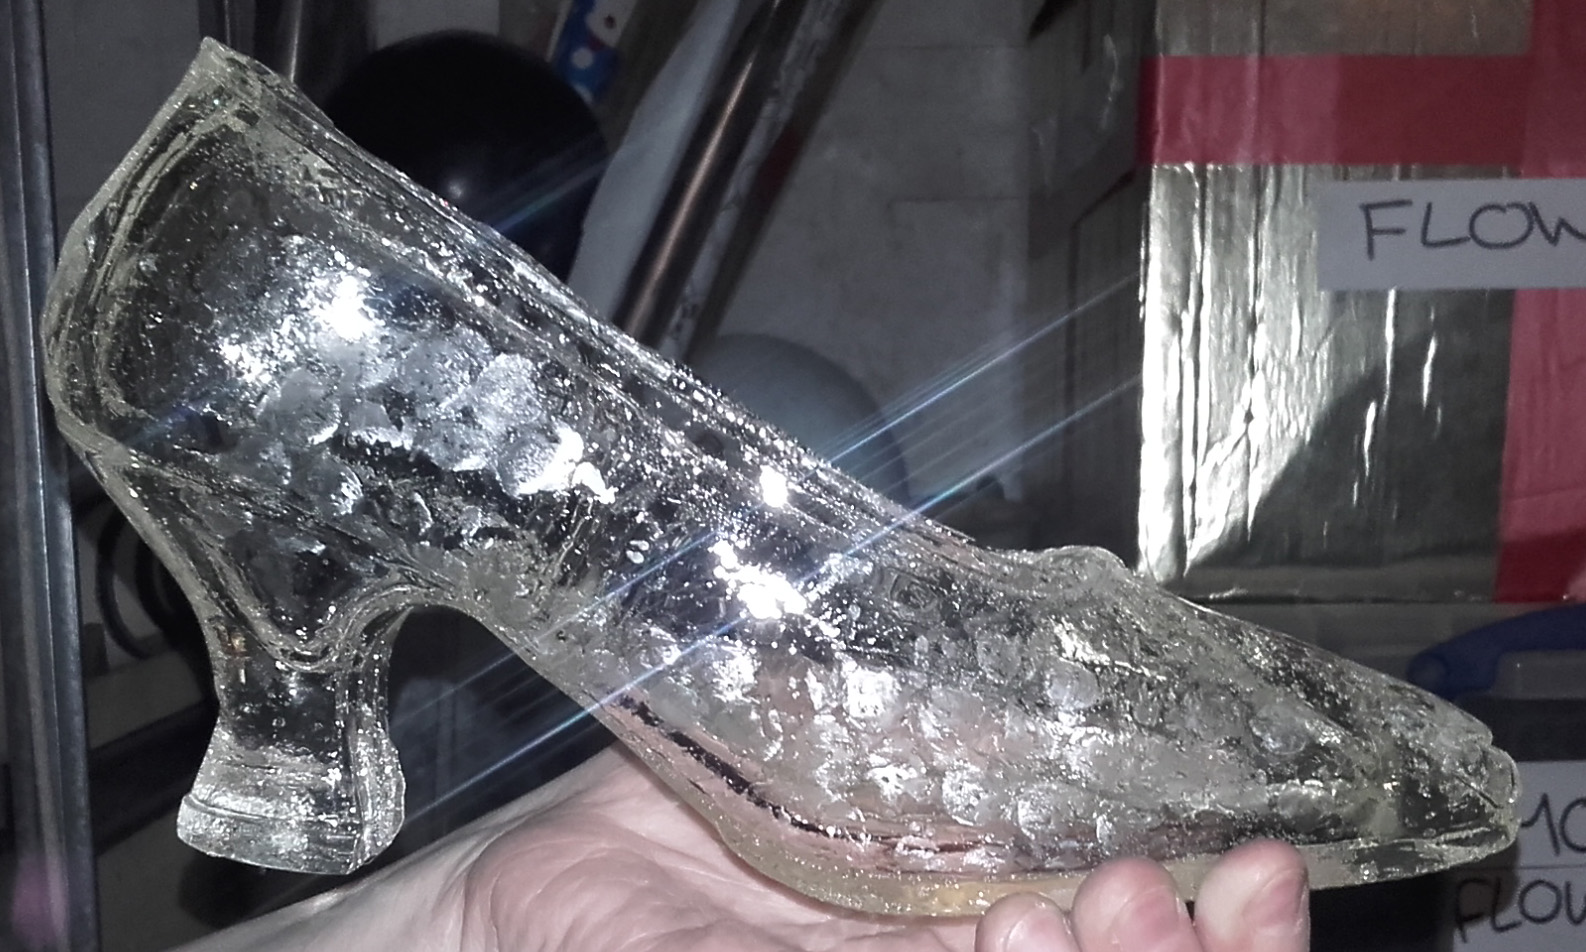 Figure 1: A Glass slipper held at the King's Theatre and used for the Cinderella Show.